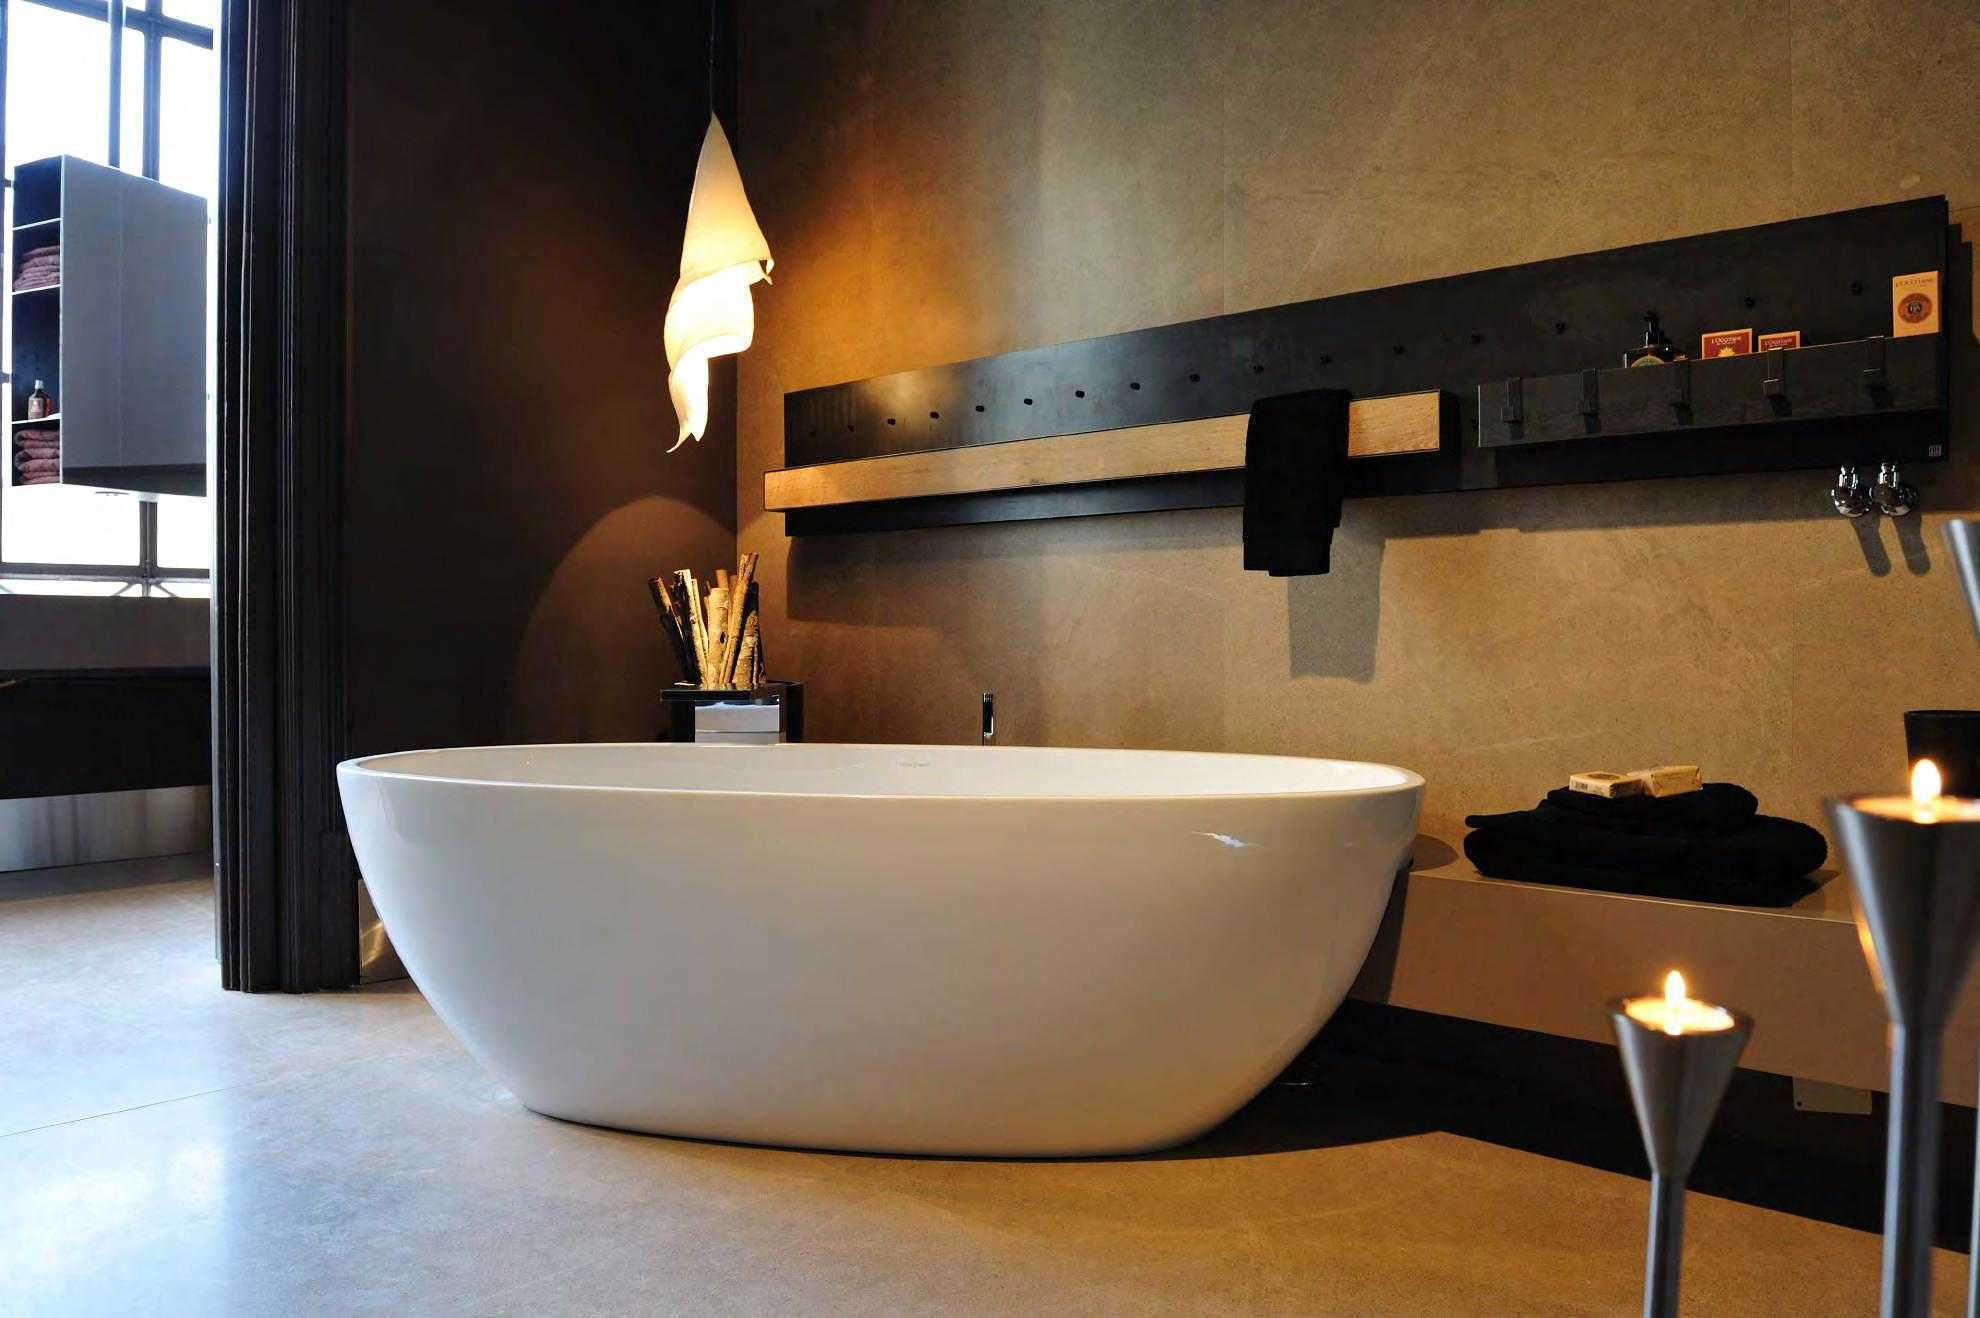 interior design bathtub Casa Decor 2011